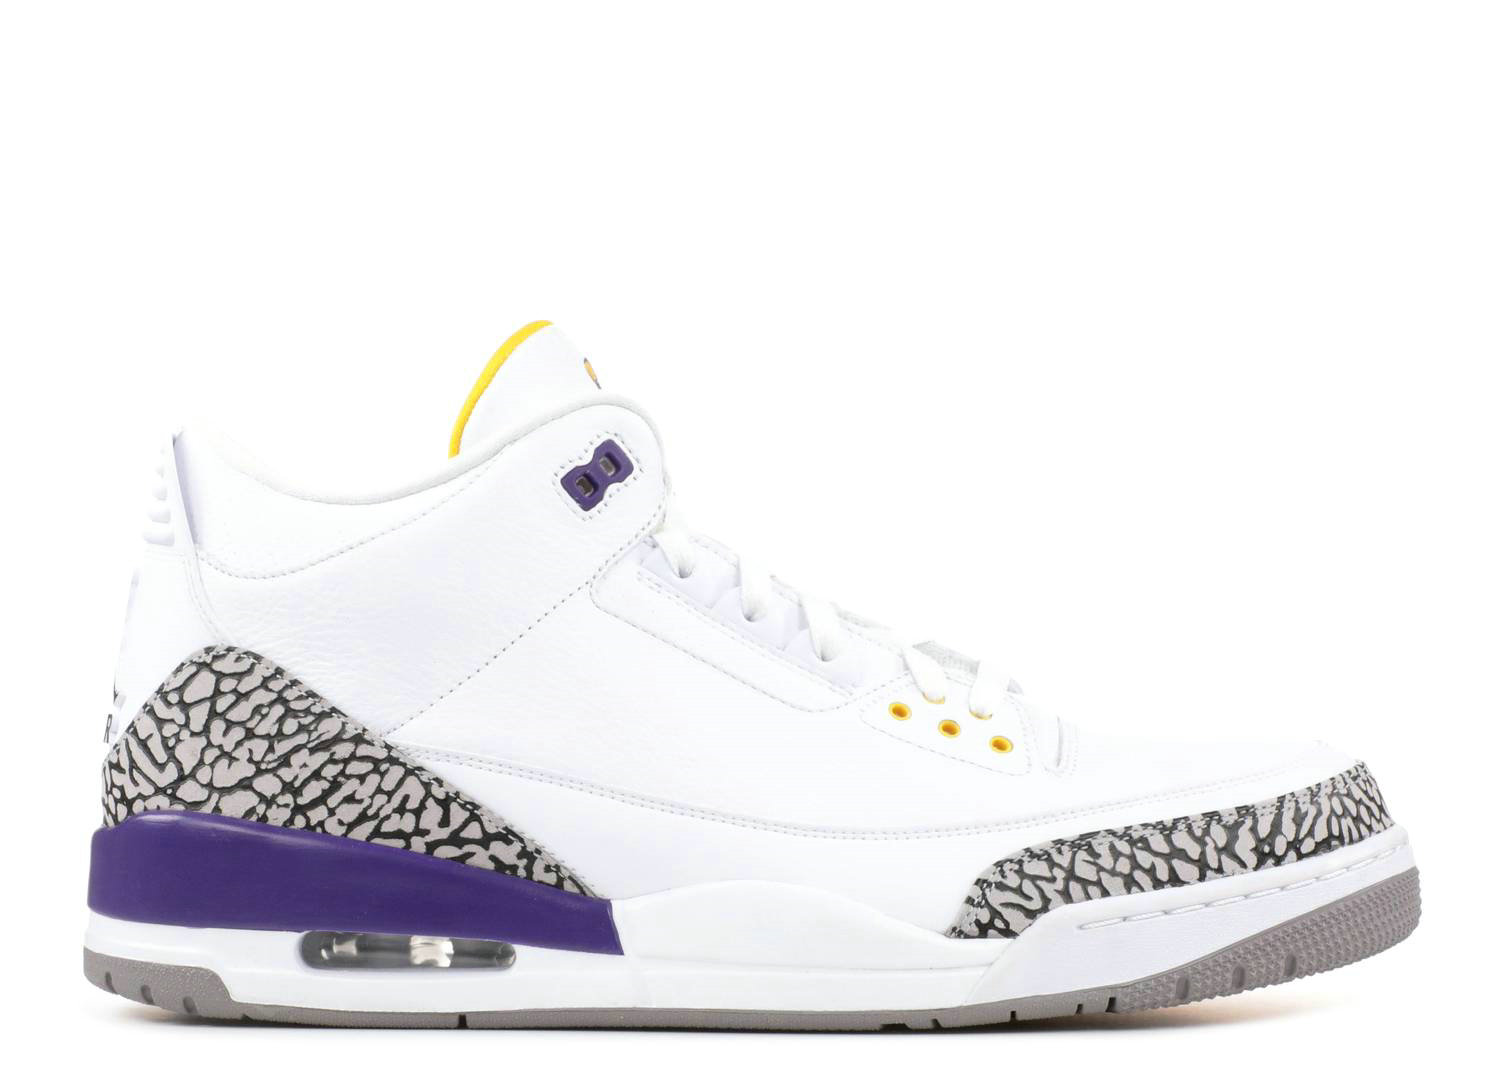 2021 Where To Buy Cheap Nike Air Jordan III 3 Retro White Purple Yellow Black Cement 136064-115 - www.wholesaleflyknit.com